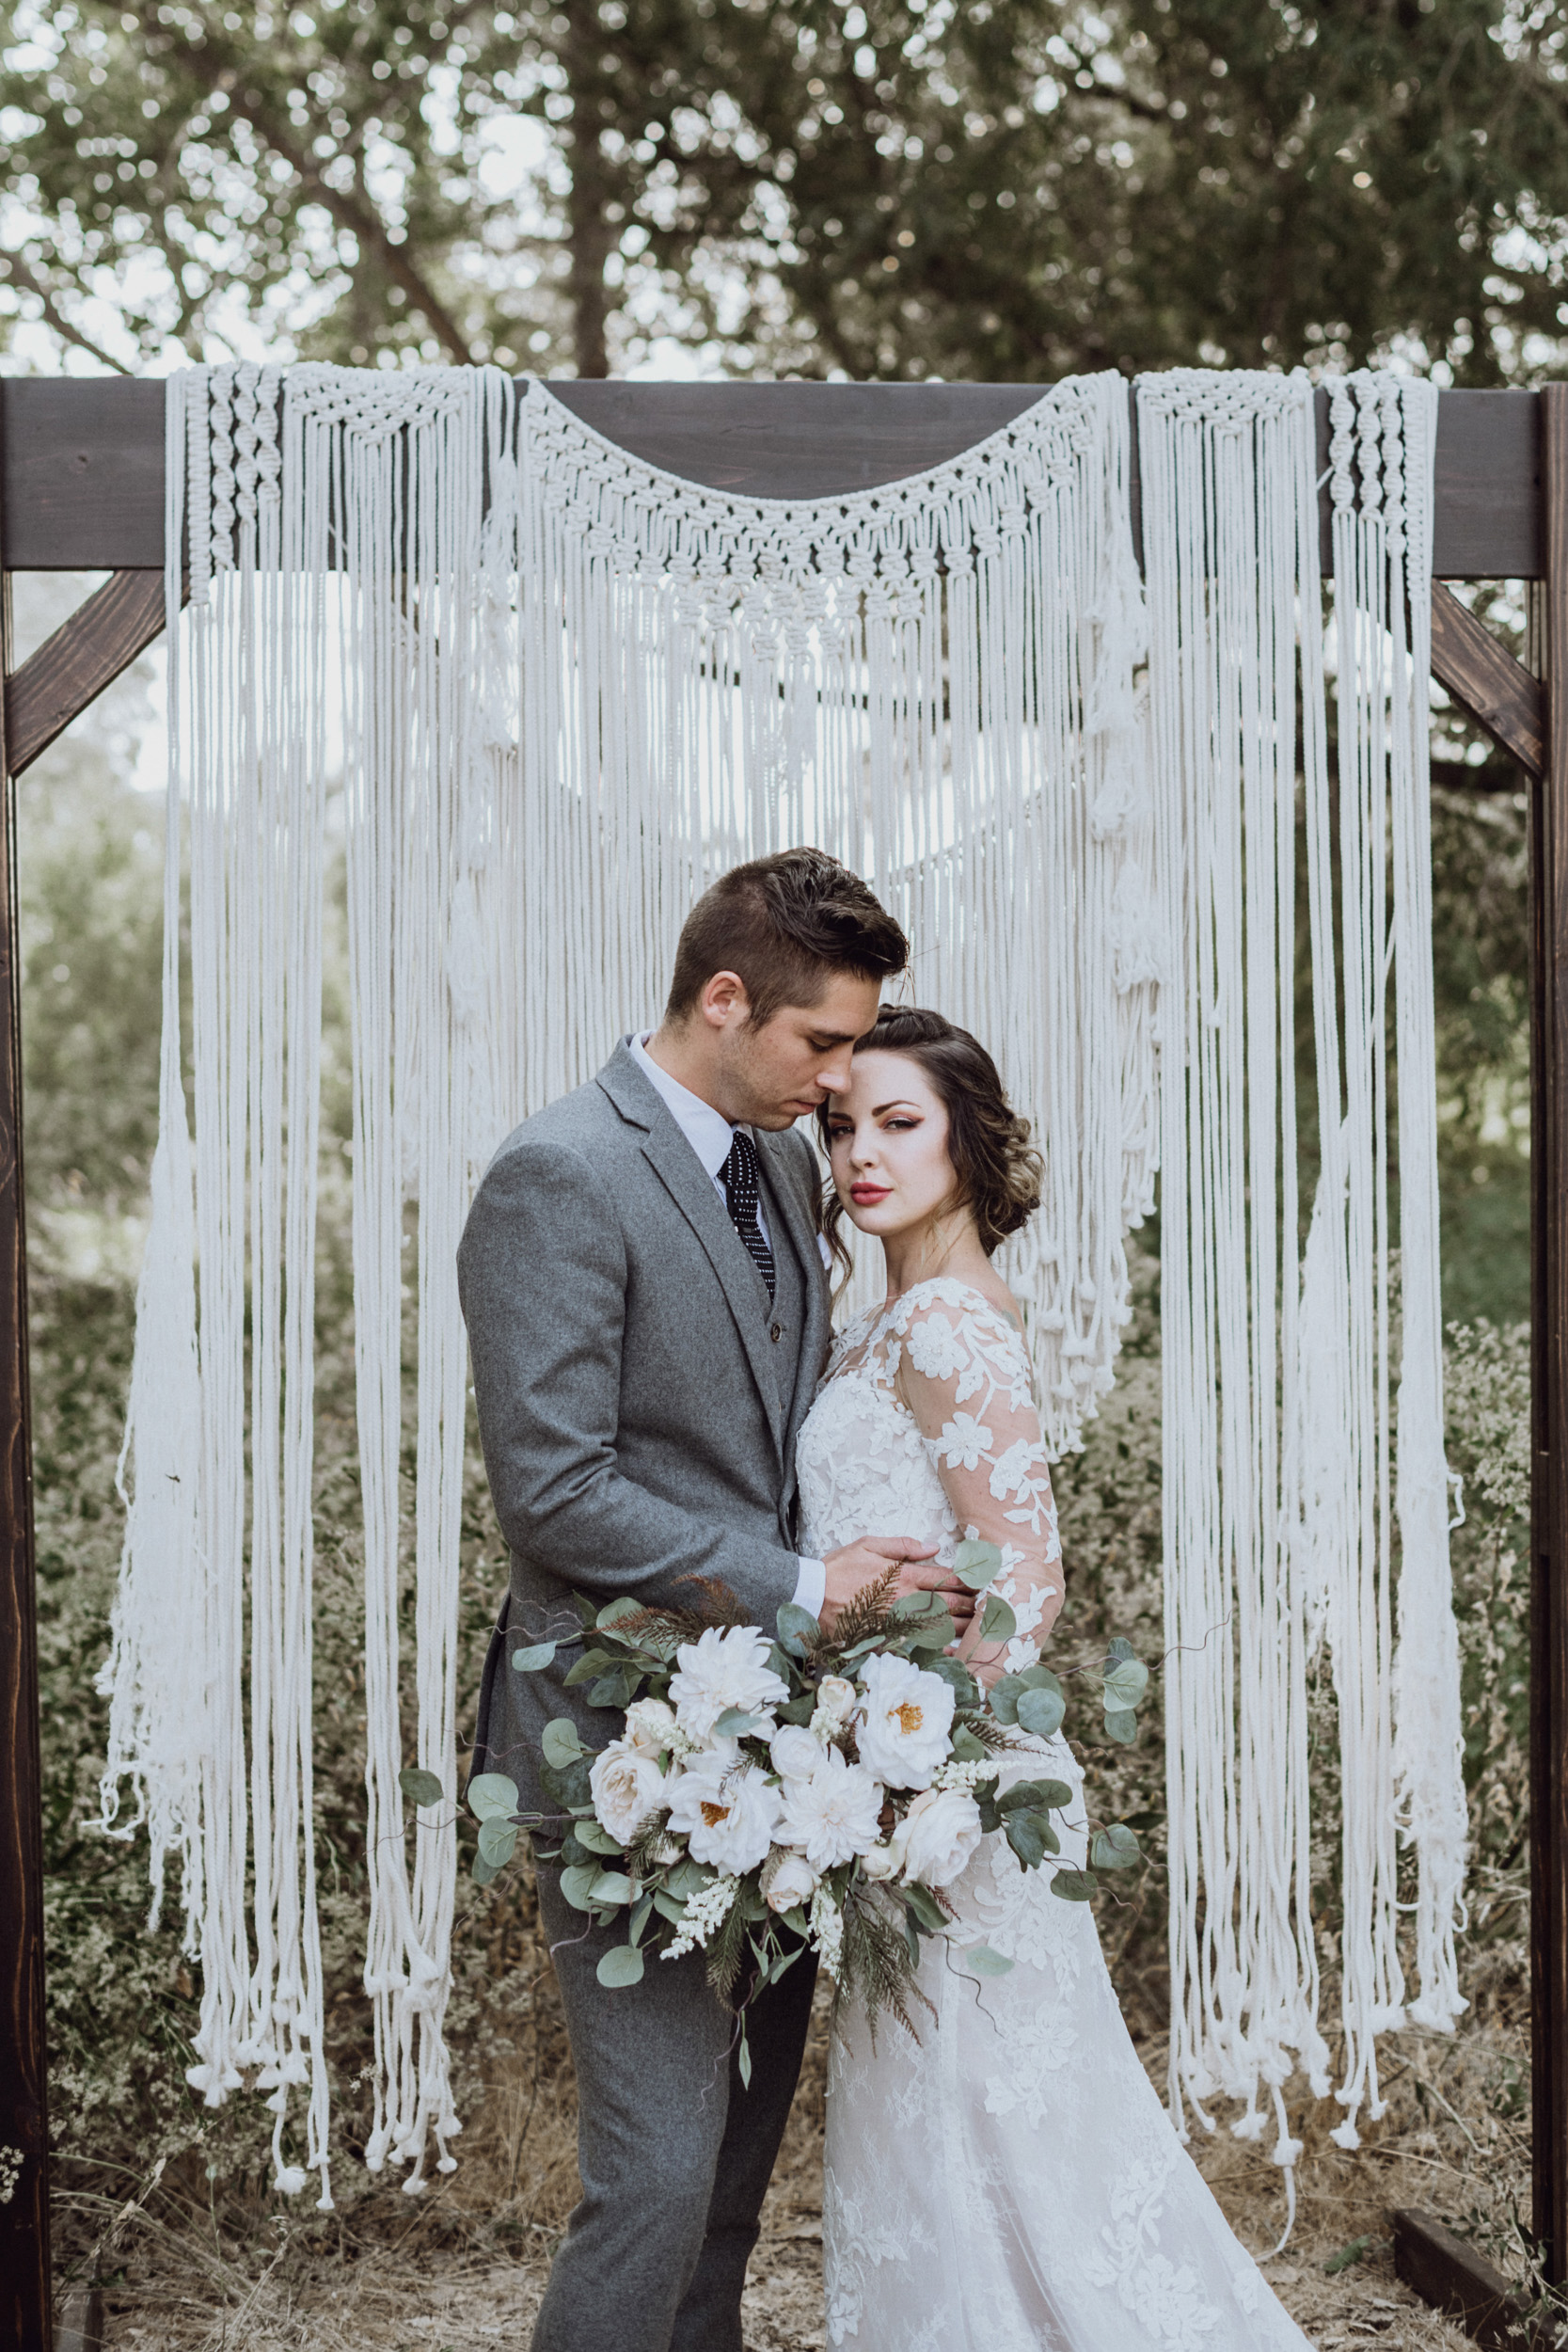 Groom holding bride in front of Macrame